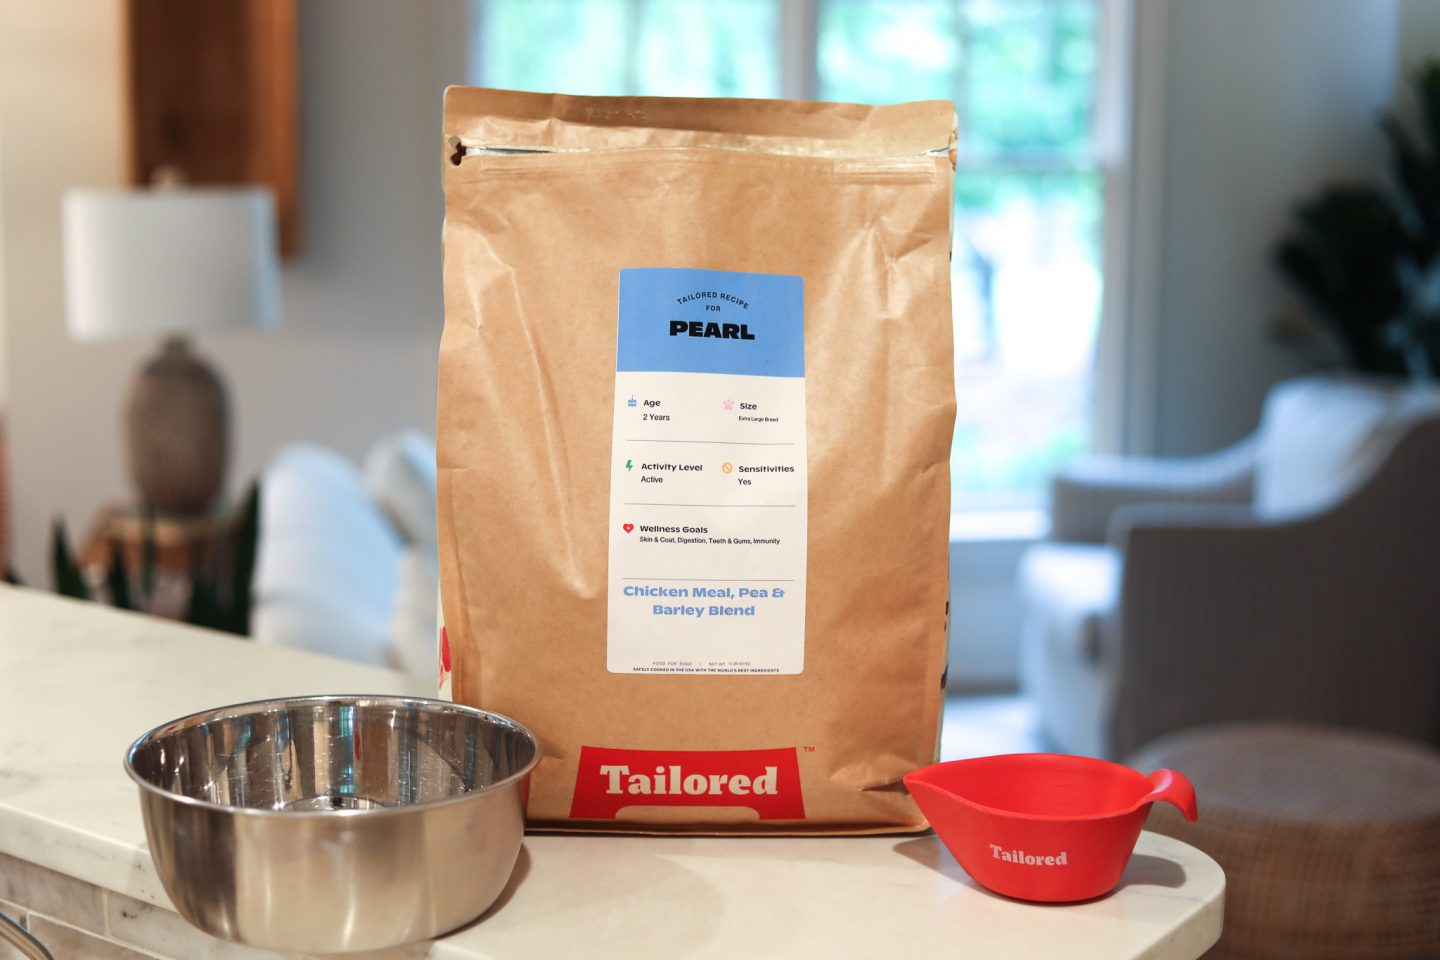 Tailored Personalized Pet Food